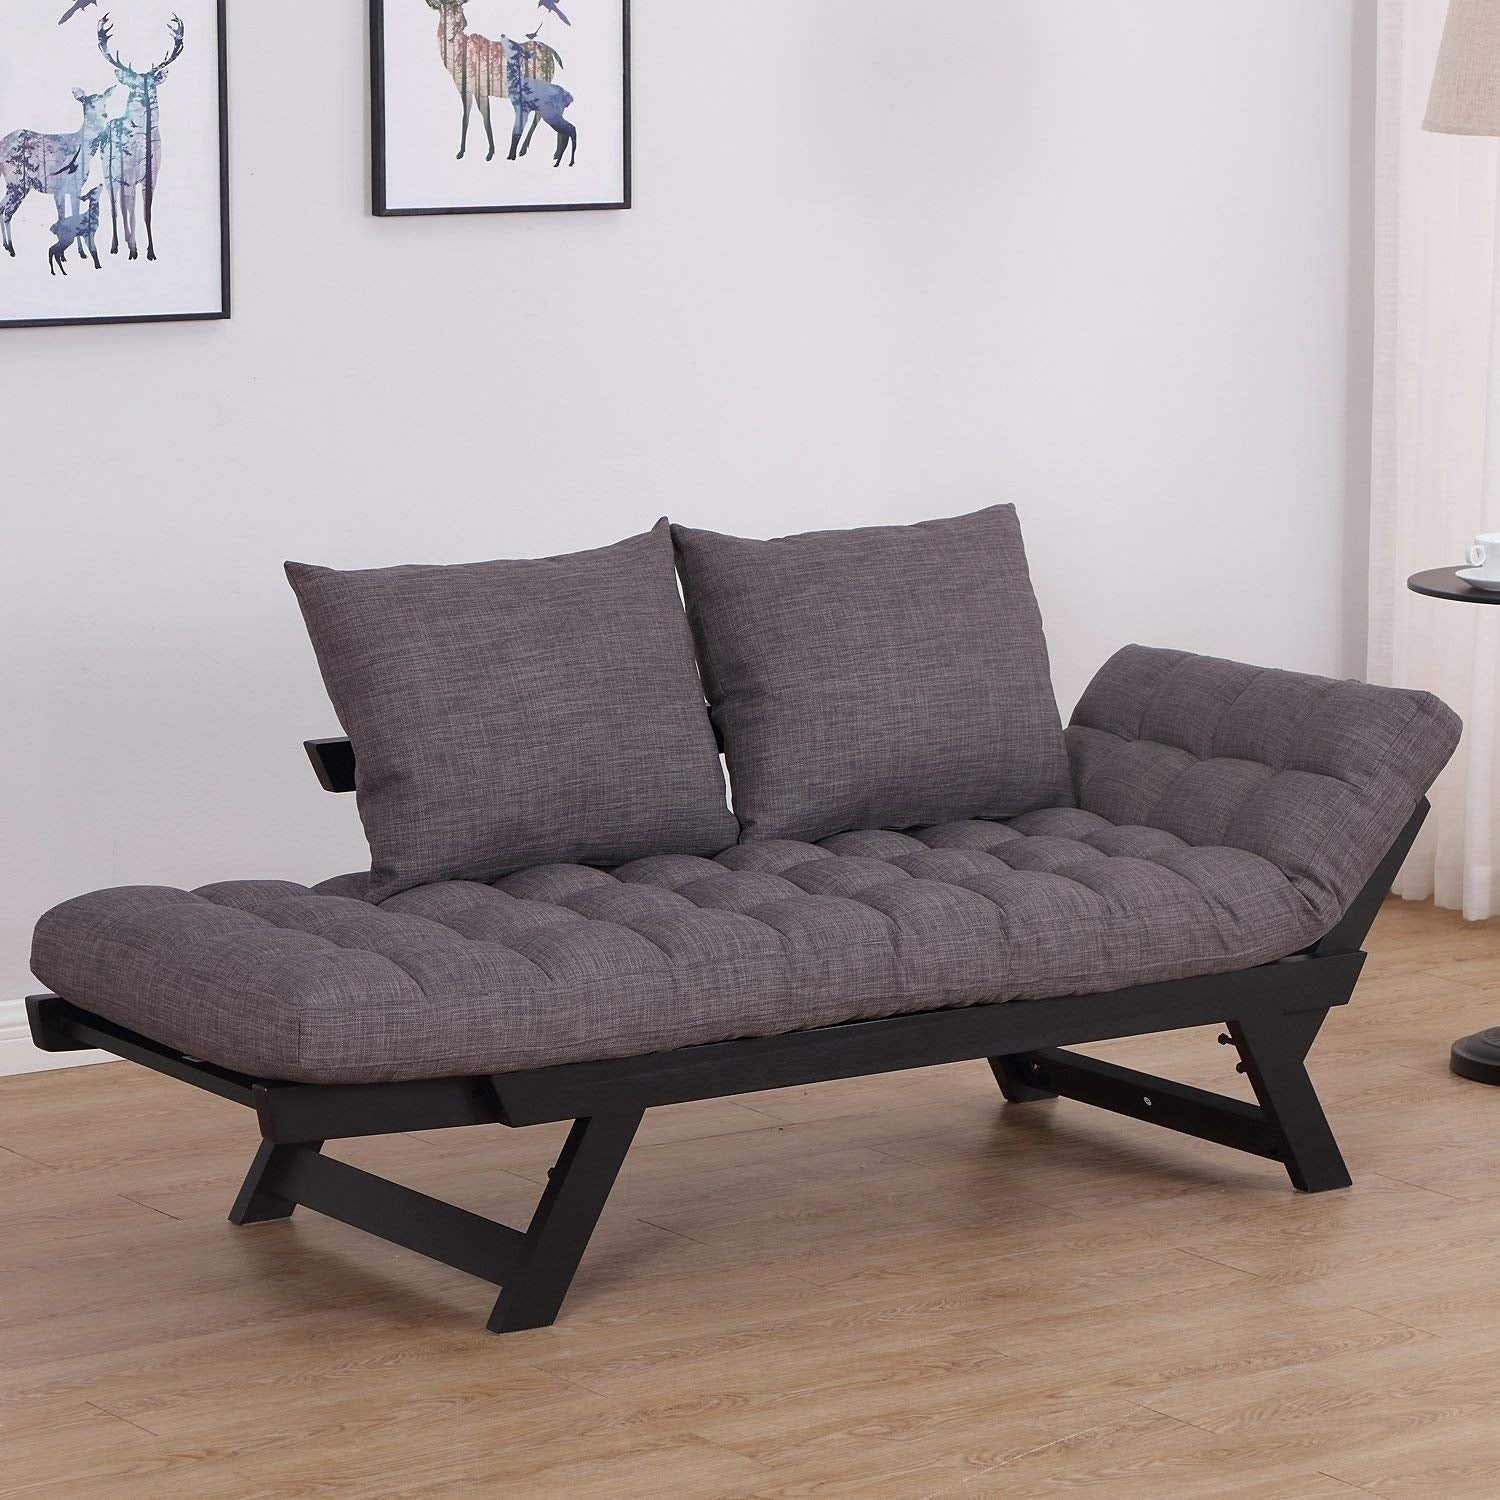 Single Person 3 Position Convertible Couch Chaise Lounger Sofa Bed On Sale Overstock 22310281